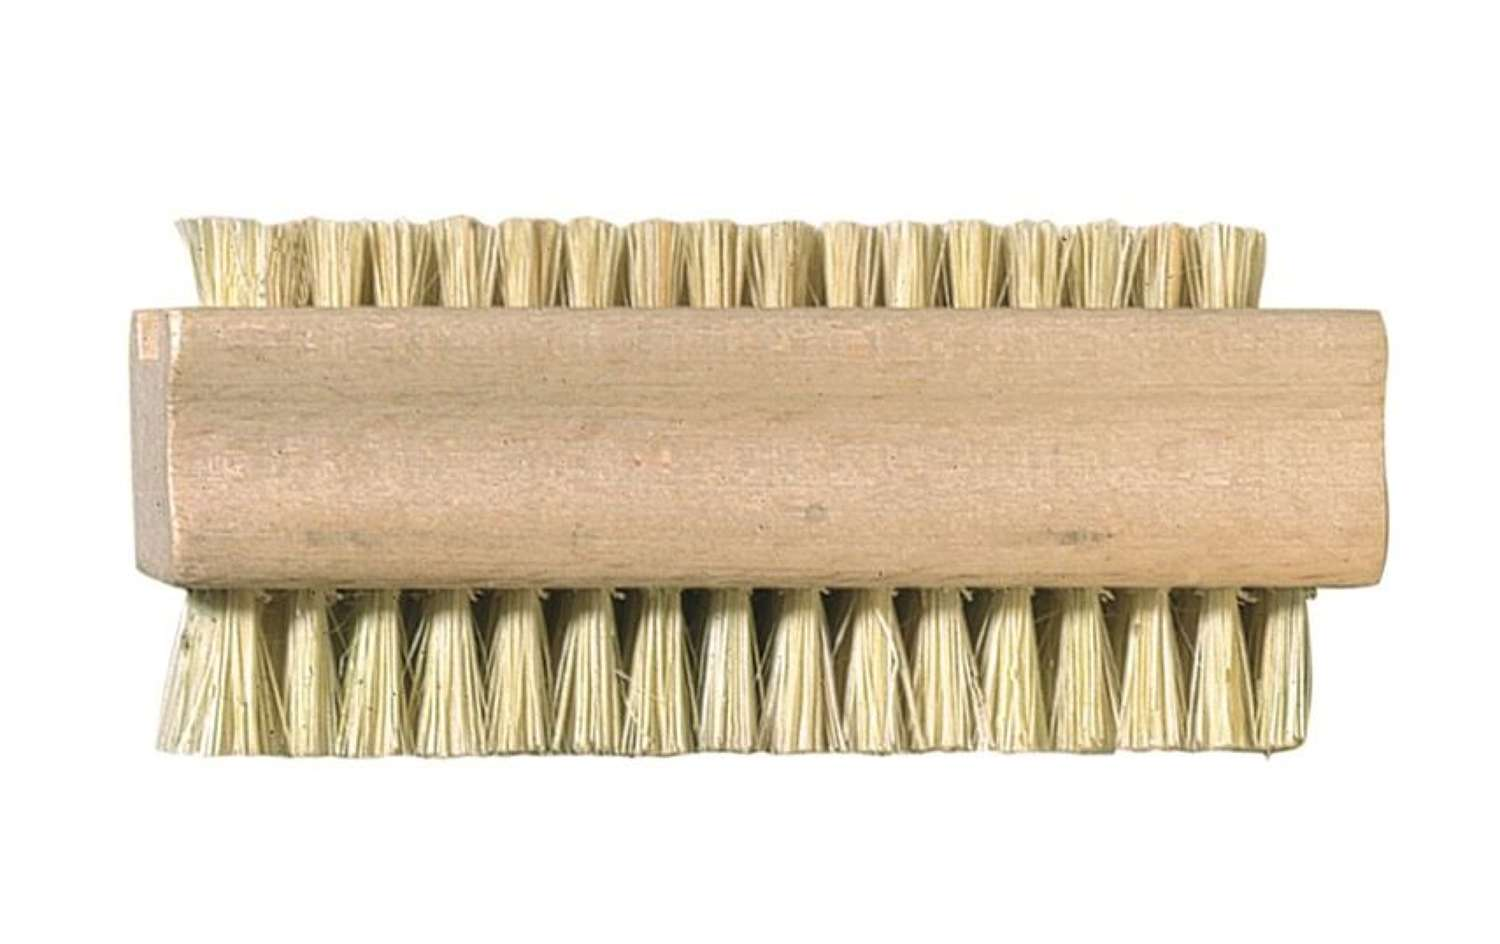 Beech Nail brush with stiff Tampico fibre bristles